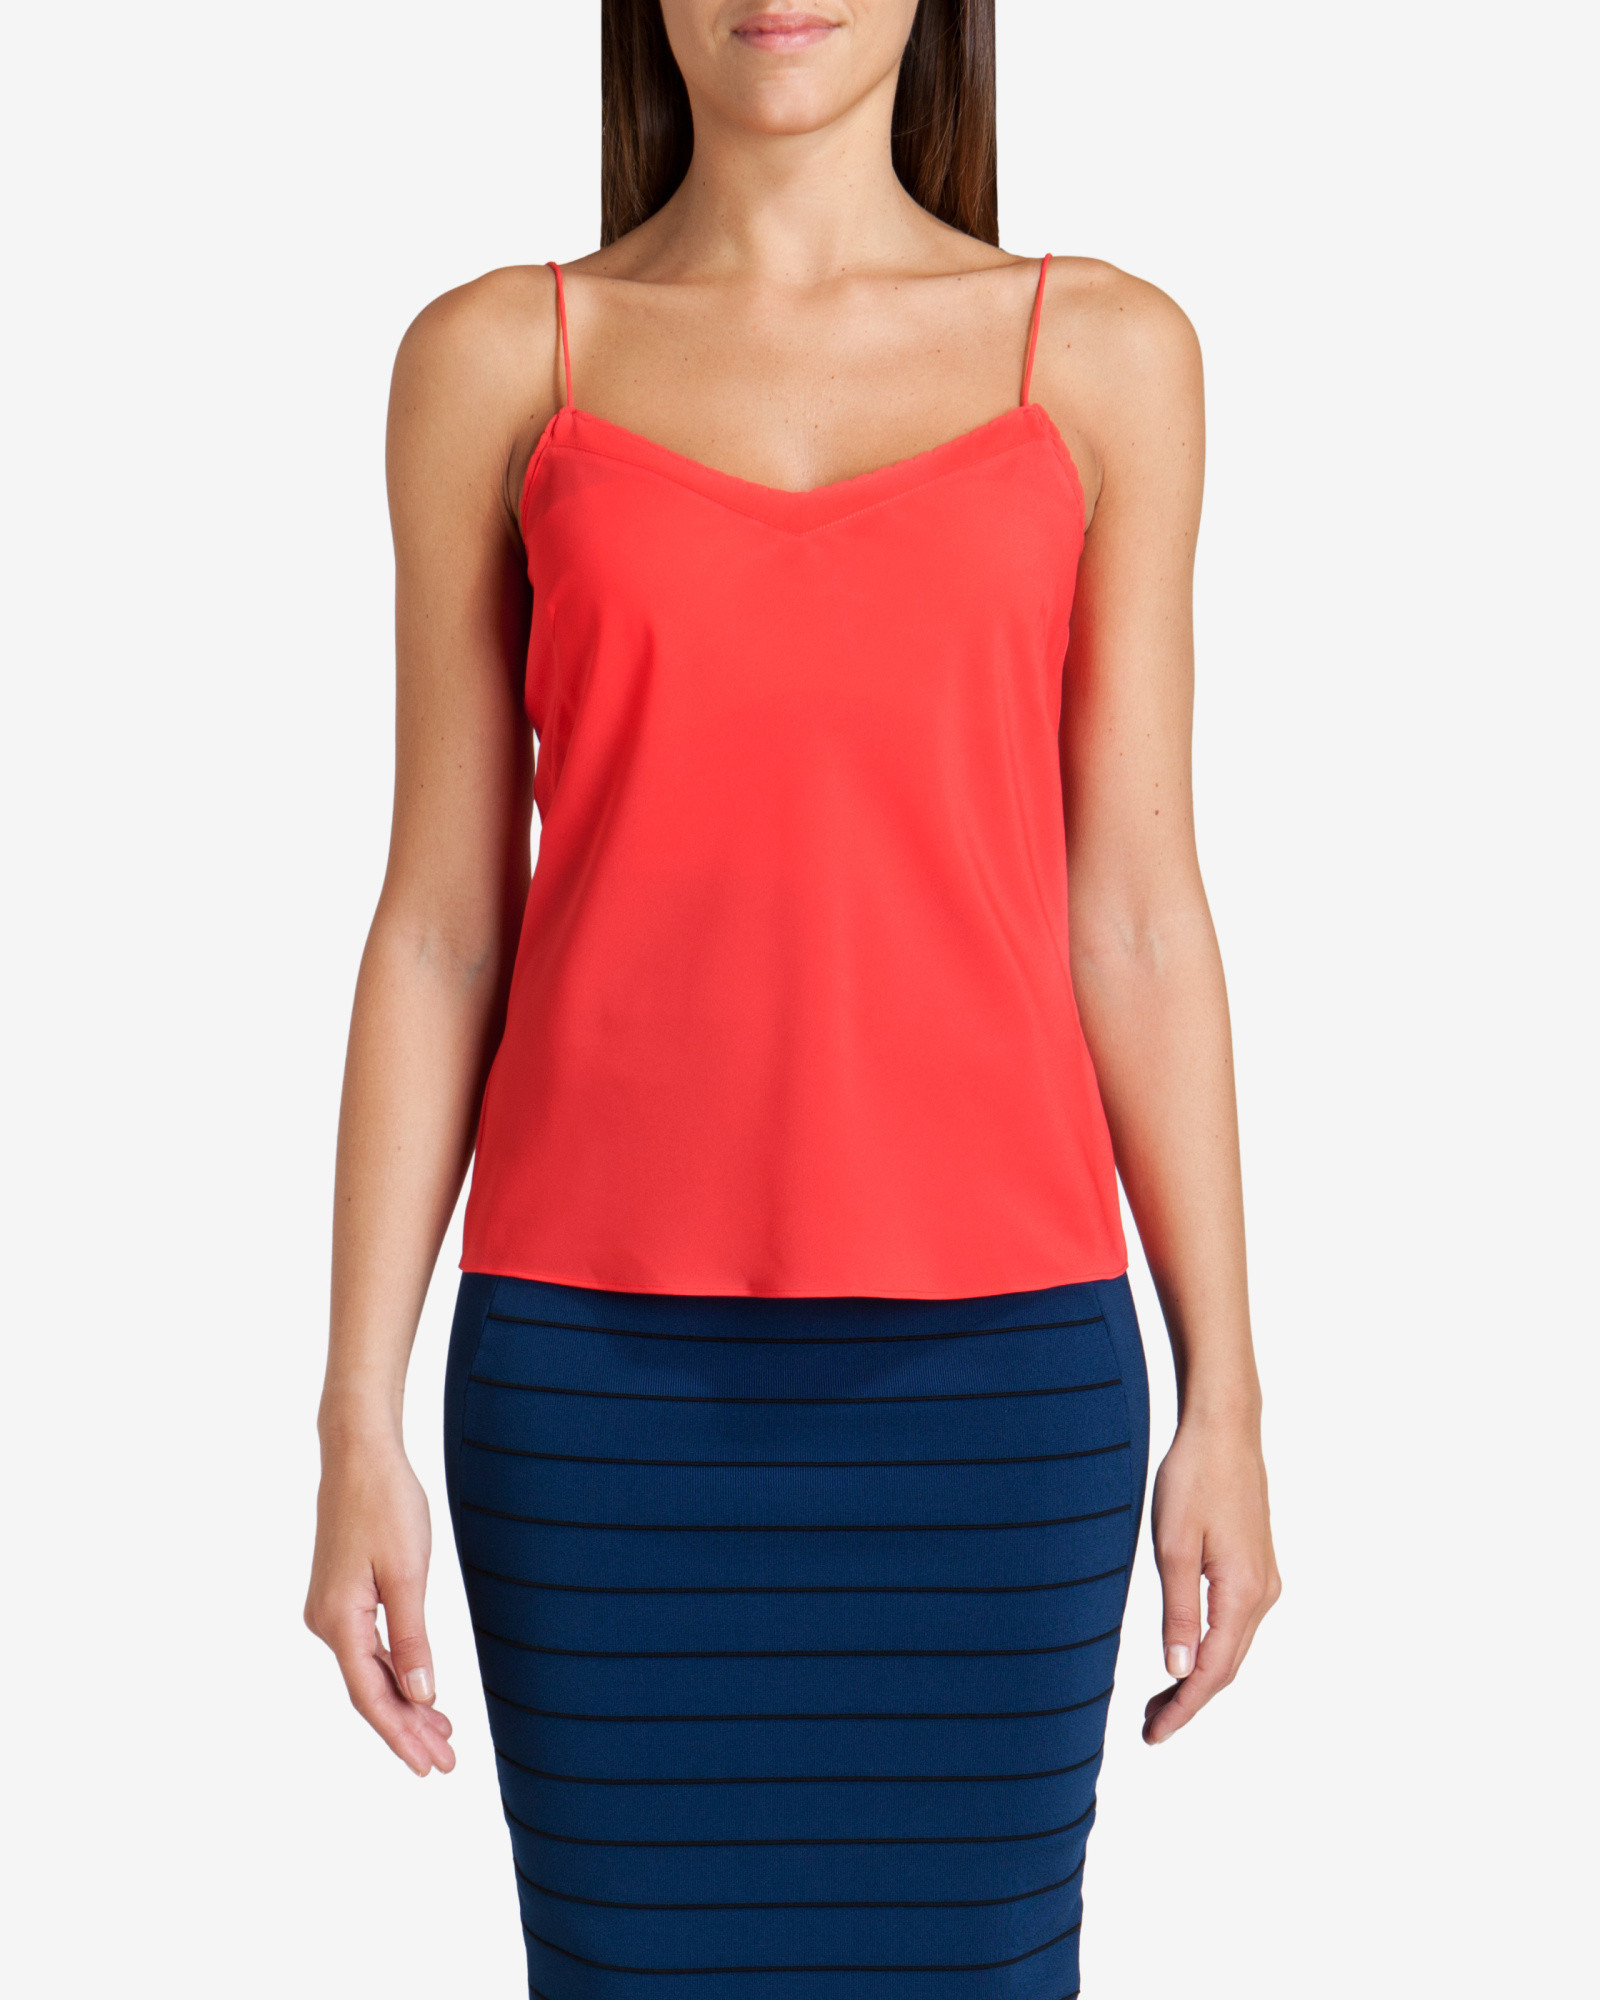 8ce860a208ad5f Lyst - Ted Baker Scalloped Edge Cami Top in Orange